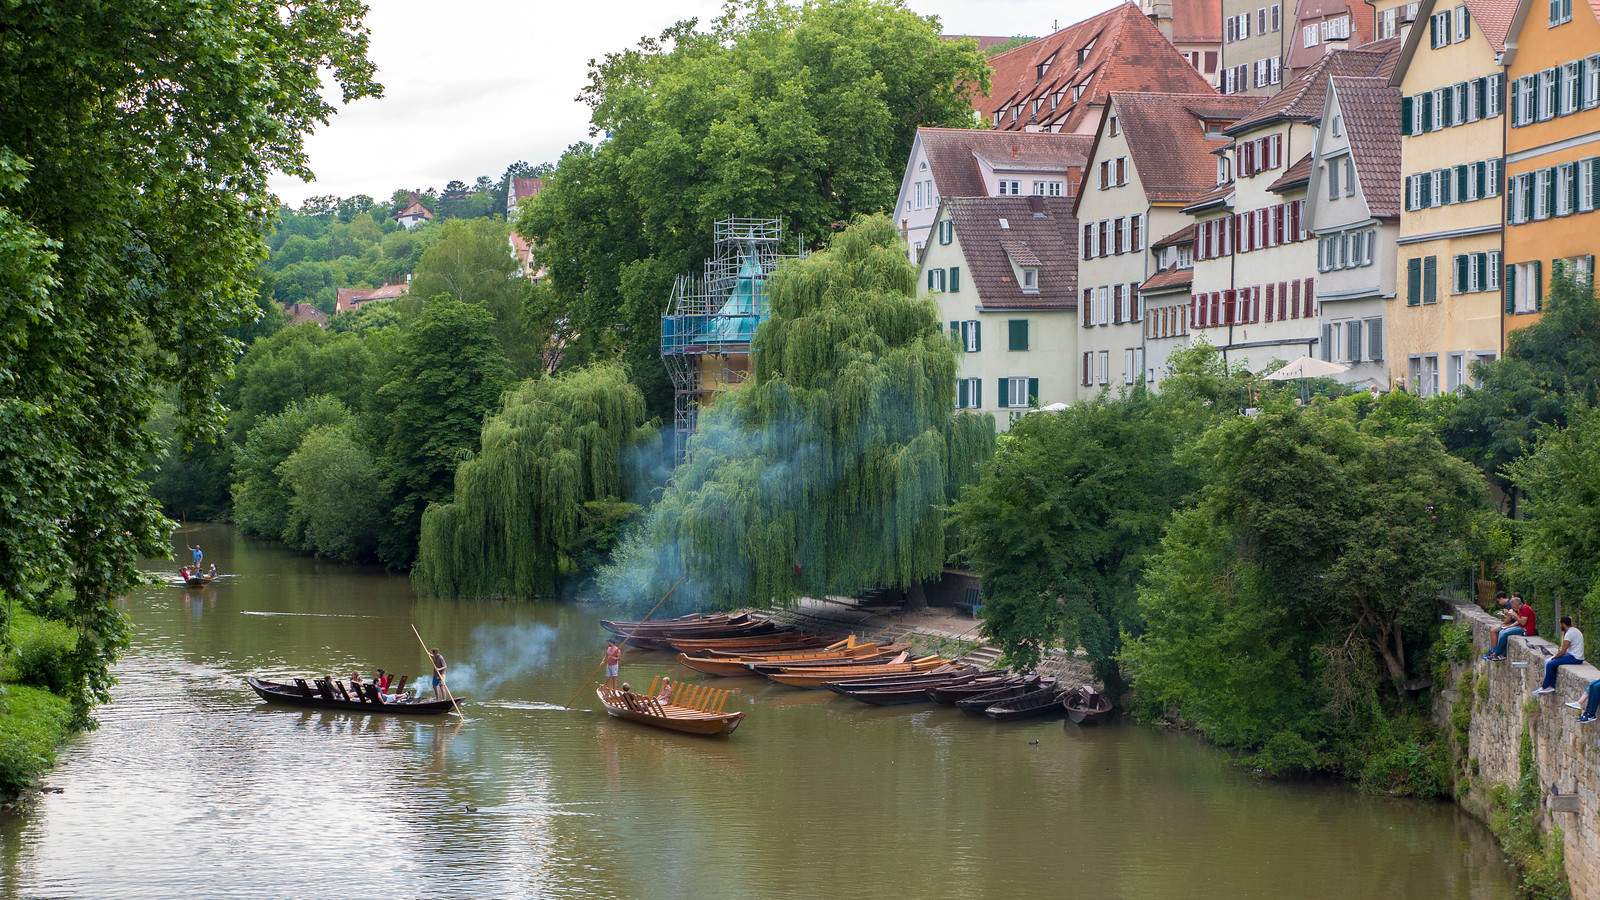 Punting on the Neckar in Tubingen. Things to do in Tubingen Germany.